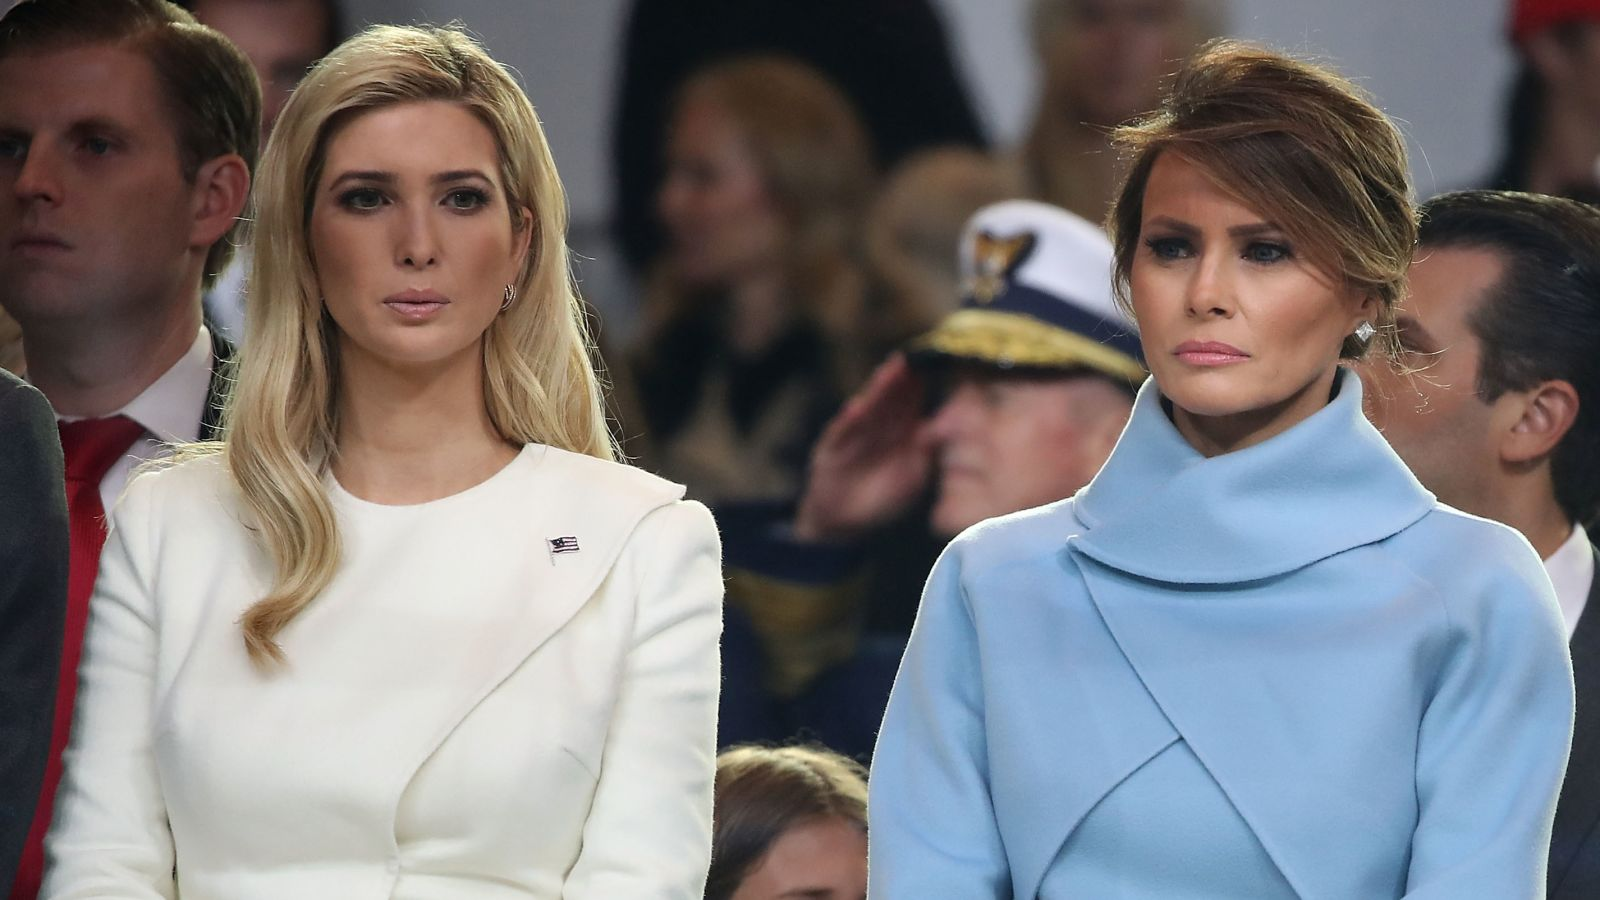 Melania and Ivanka clashed over East Wing, claims Vicky Ward